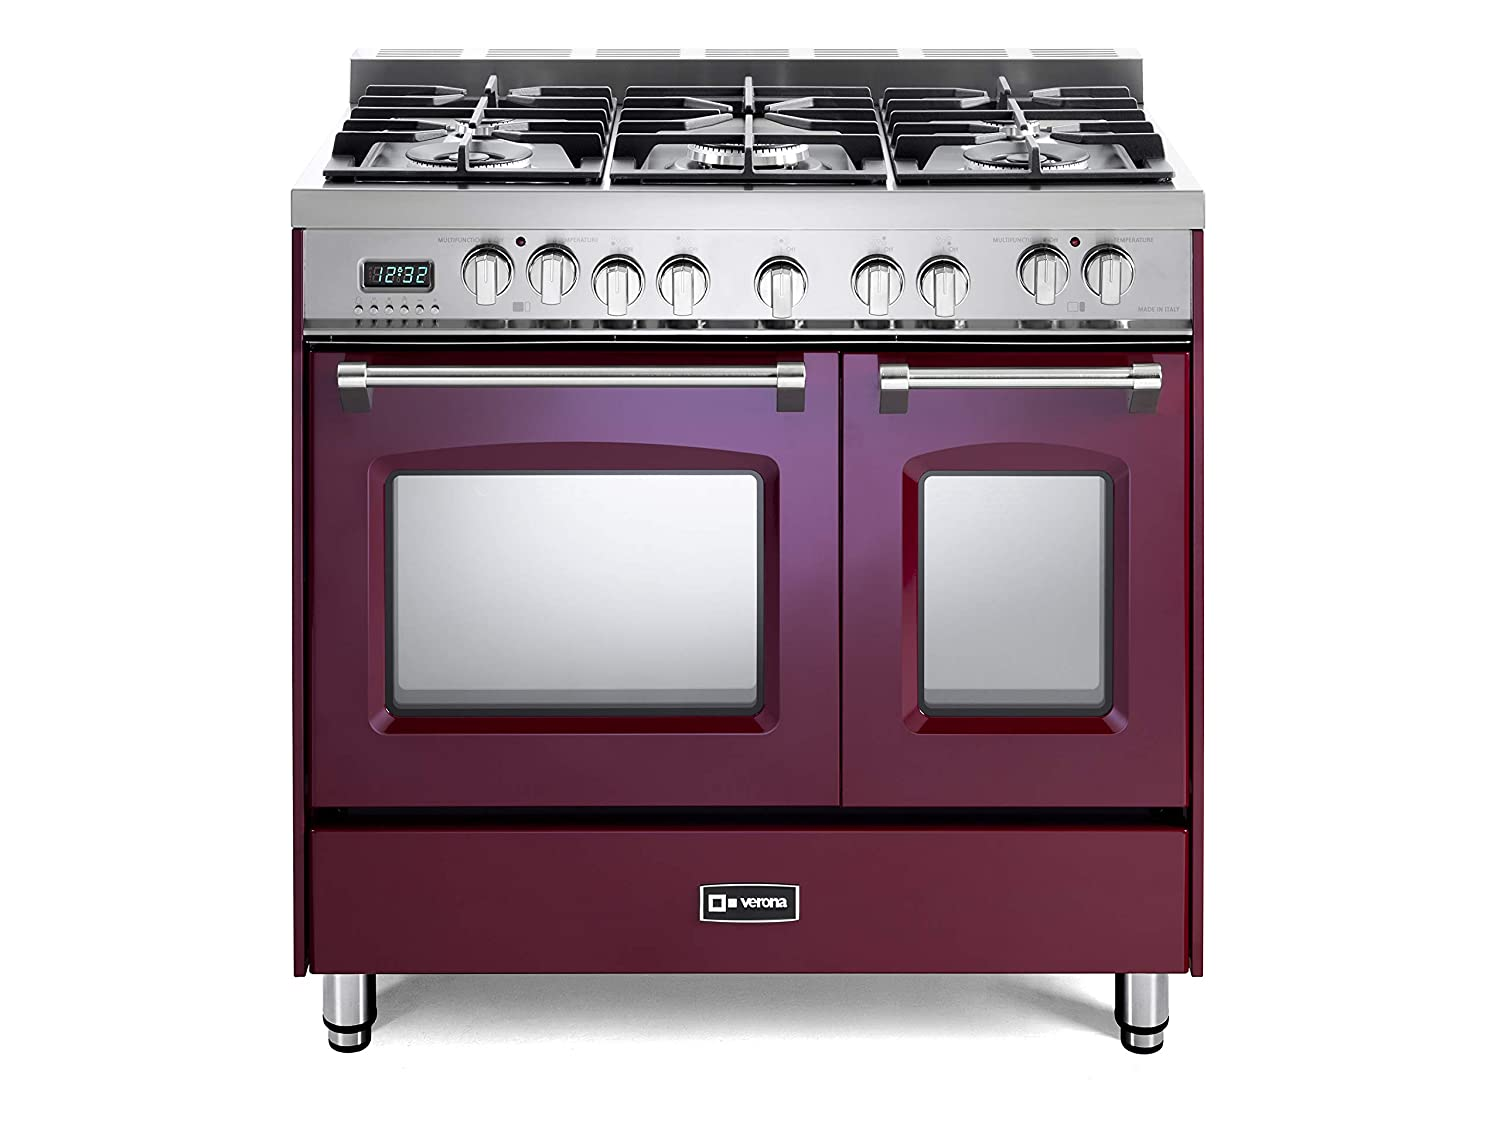 Verona Prestige VPFSGE365DBU 36 inch. Dual Fuel Range 5 Sealed Burners Double Oven Convection Storage Drawer Burgundy